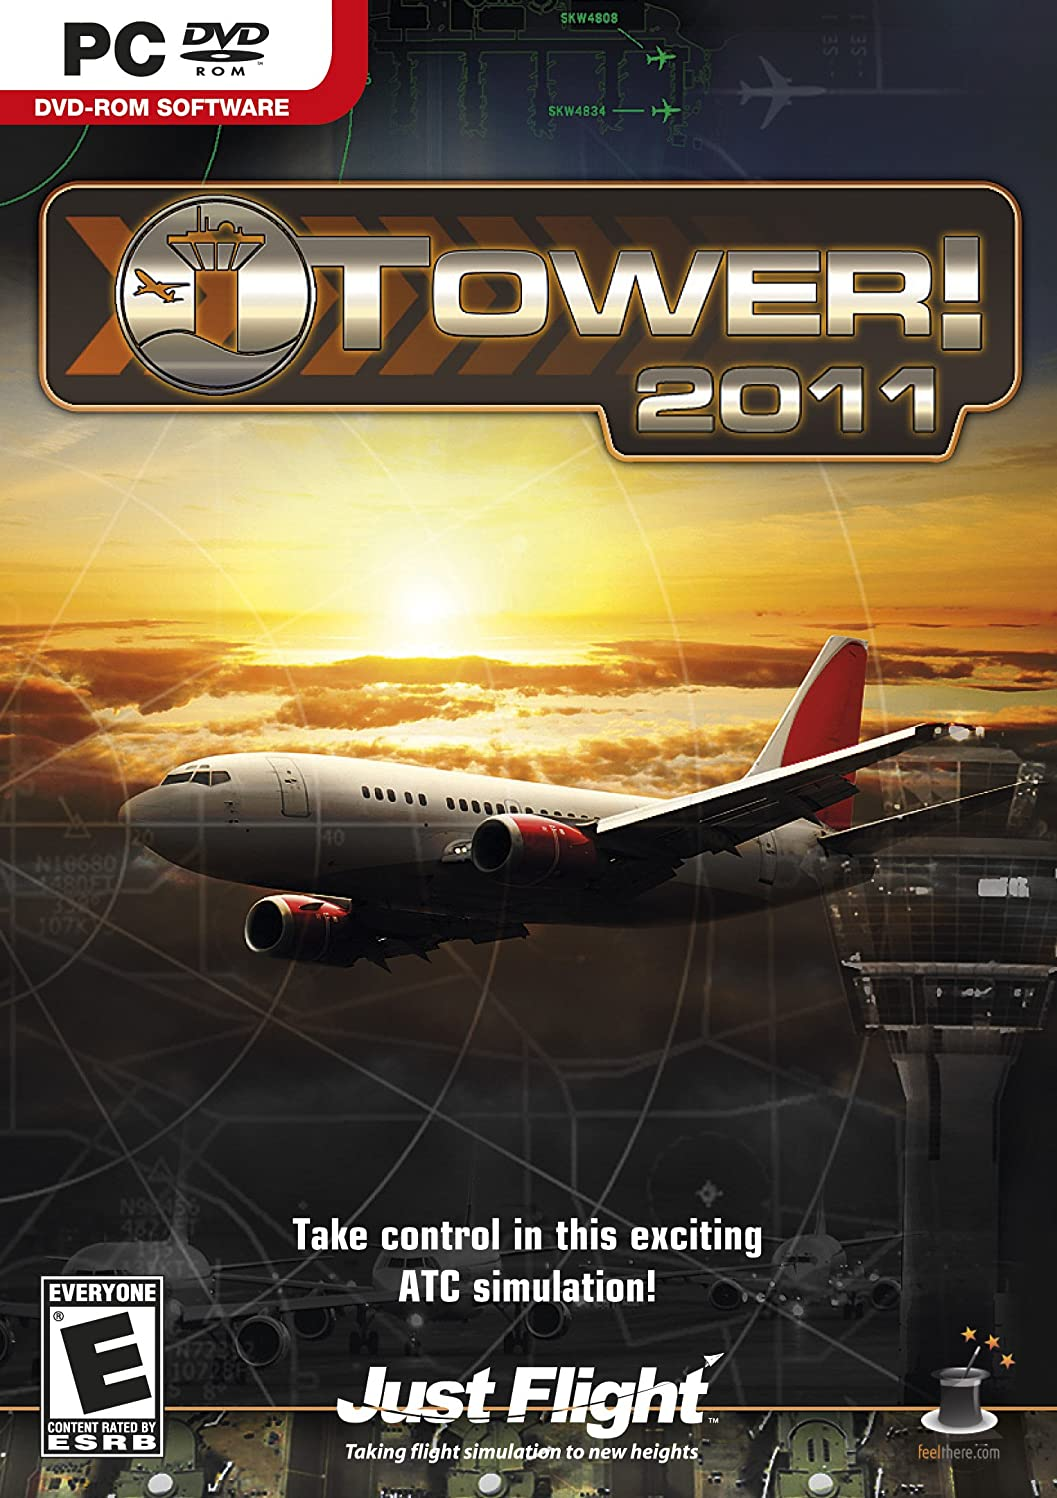 Tower 2011 - PC